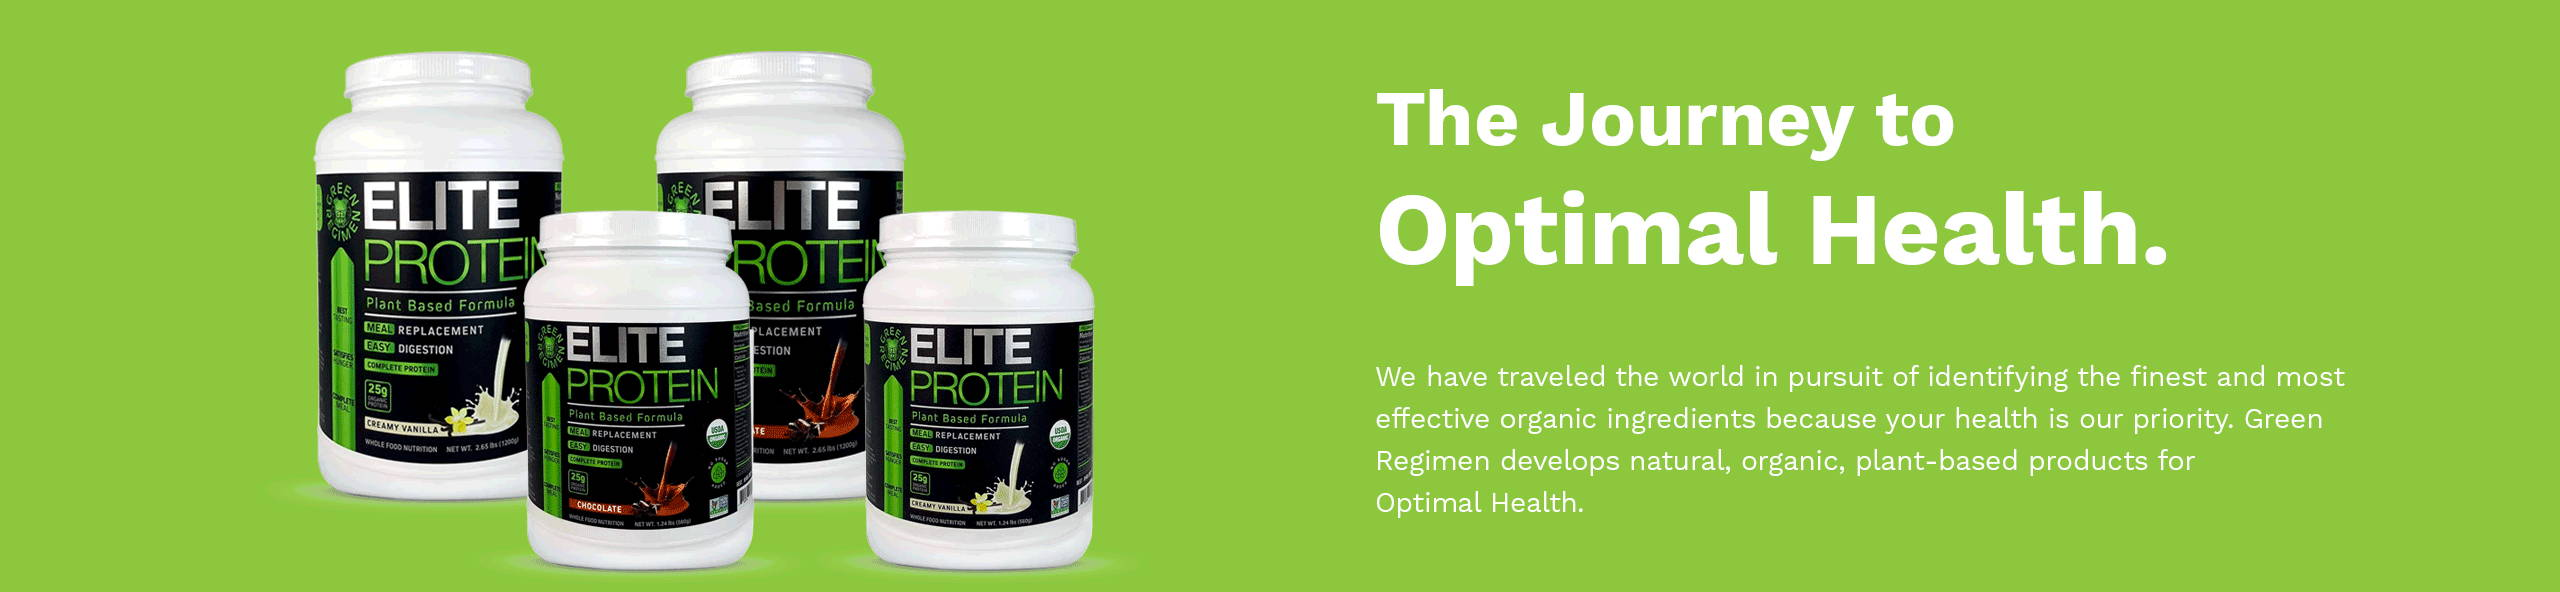 The Journey to Optimal Health. We have traveled the world in pursuit of identifying the finest and most effective organic ingredients because your health is our priority. Green Regimen develops natural, organic, plant-based products for Optimal Health.